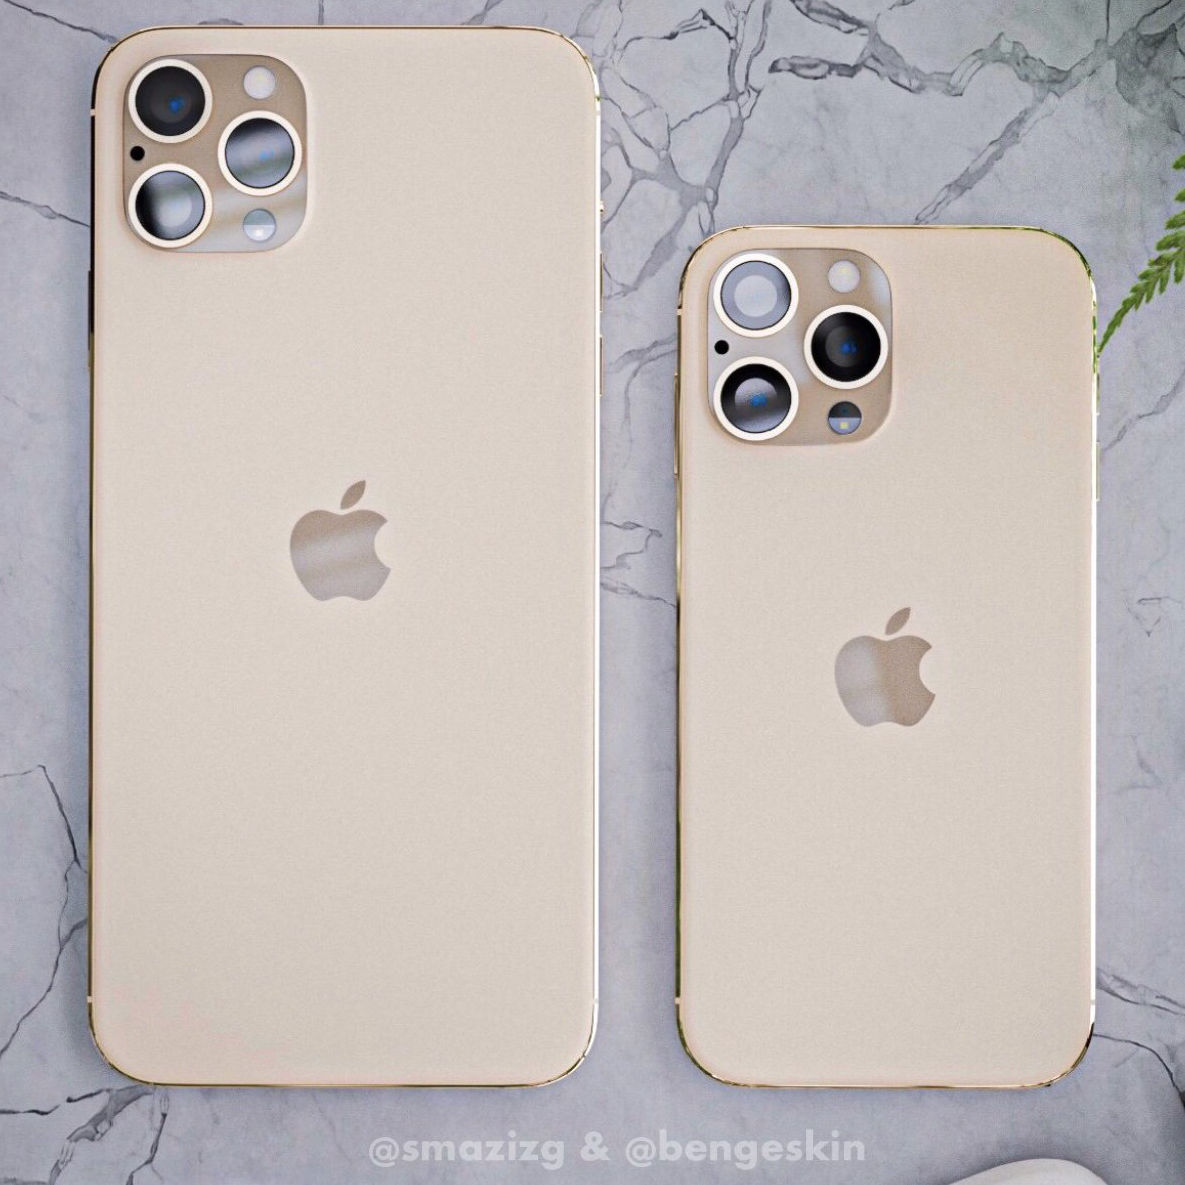 2020iPhone12 rendercg 02